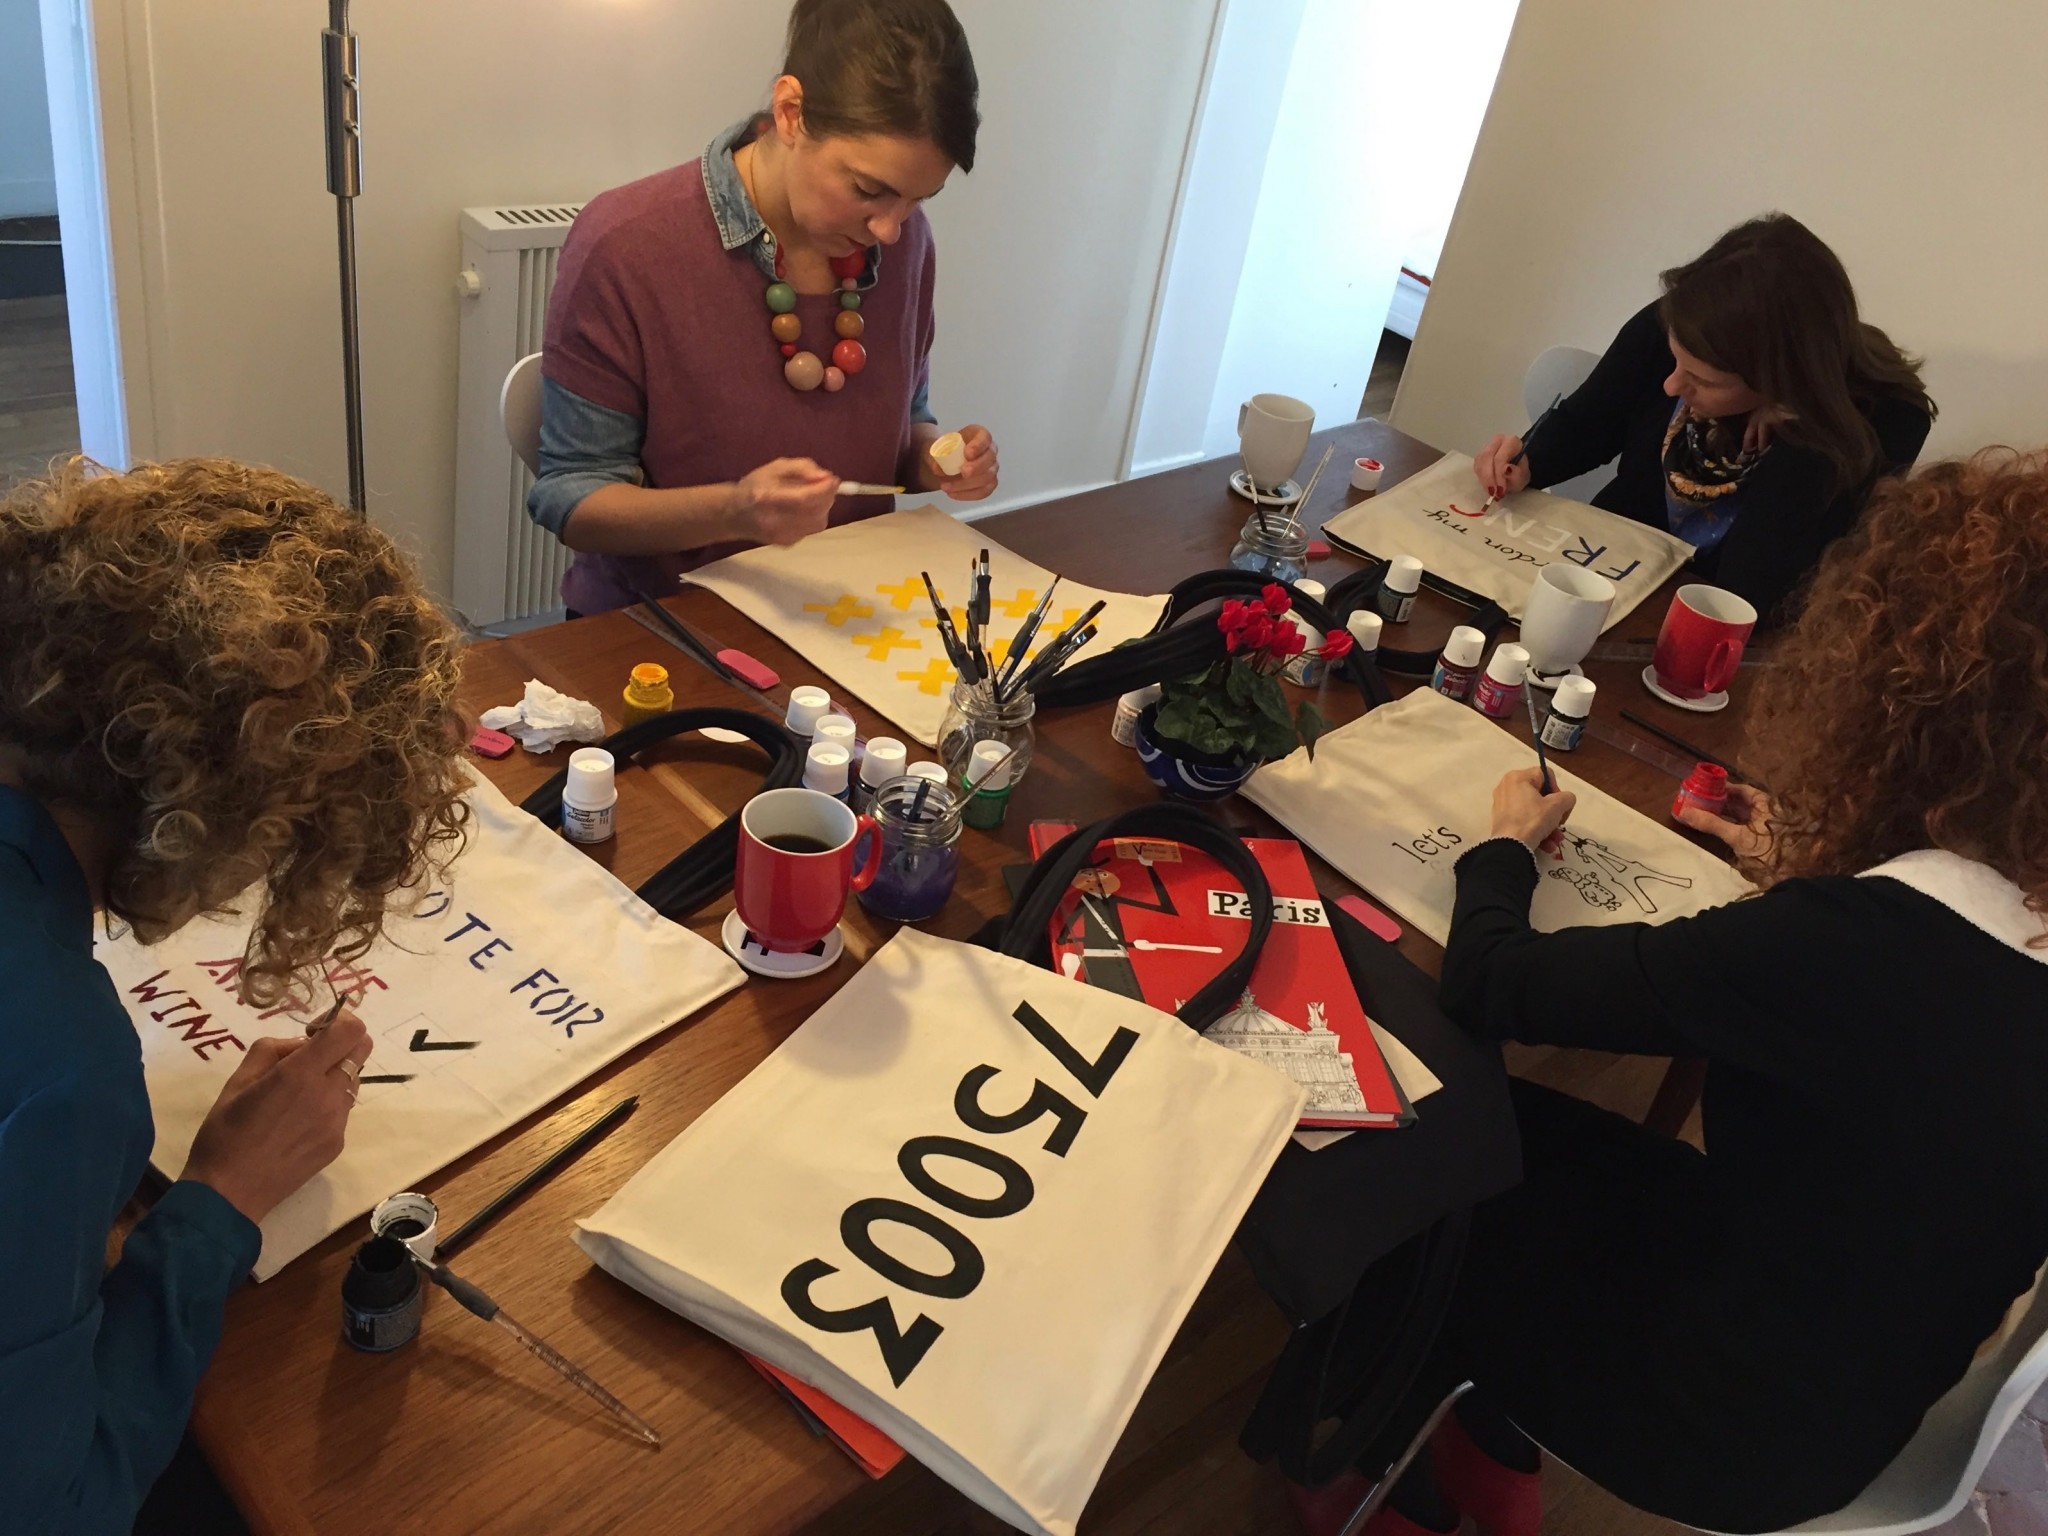 kasia-dietz-bag-painting-workshop-airbnb-1